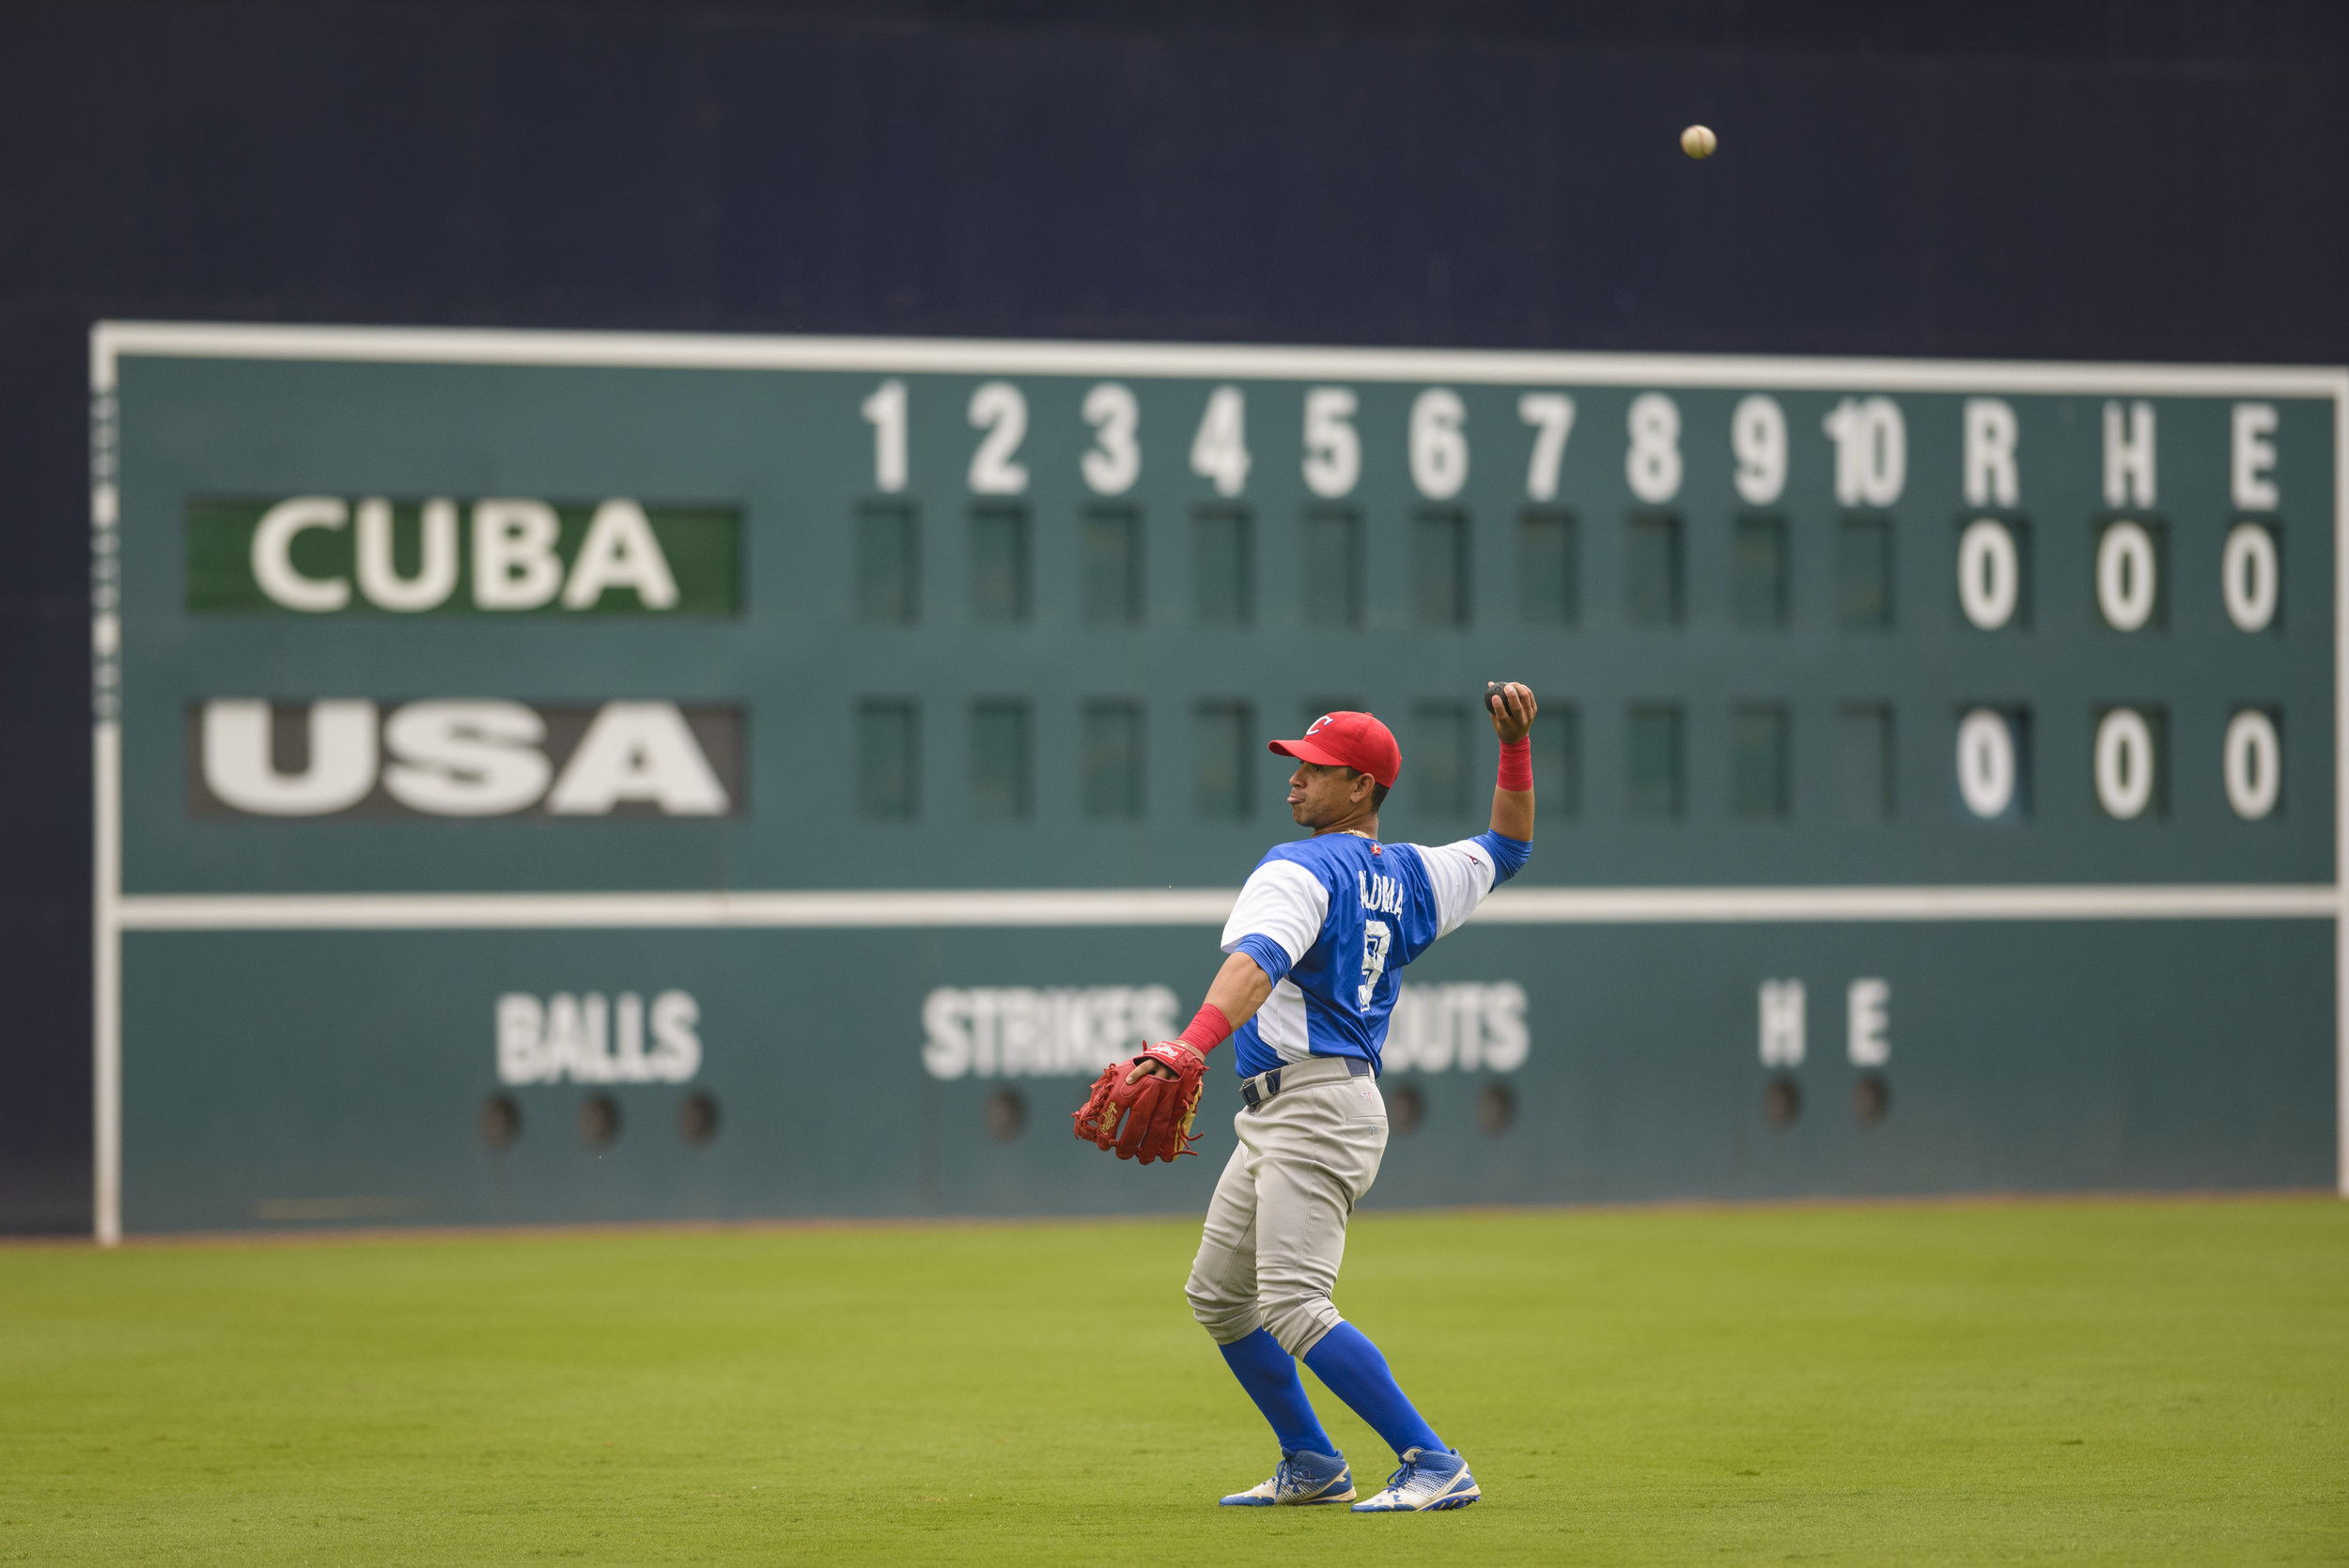 Cuban shortstop Jorge Enrique Aloma (9) warms up before Cuba's game against the USA Baseball Collegiate National Team on July 4, 2019 at Durham Bulls Athletic Park in Durham, NC.